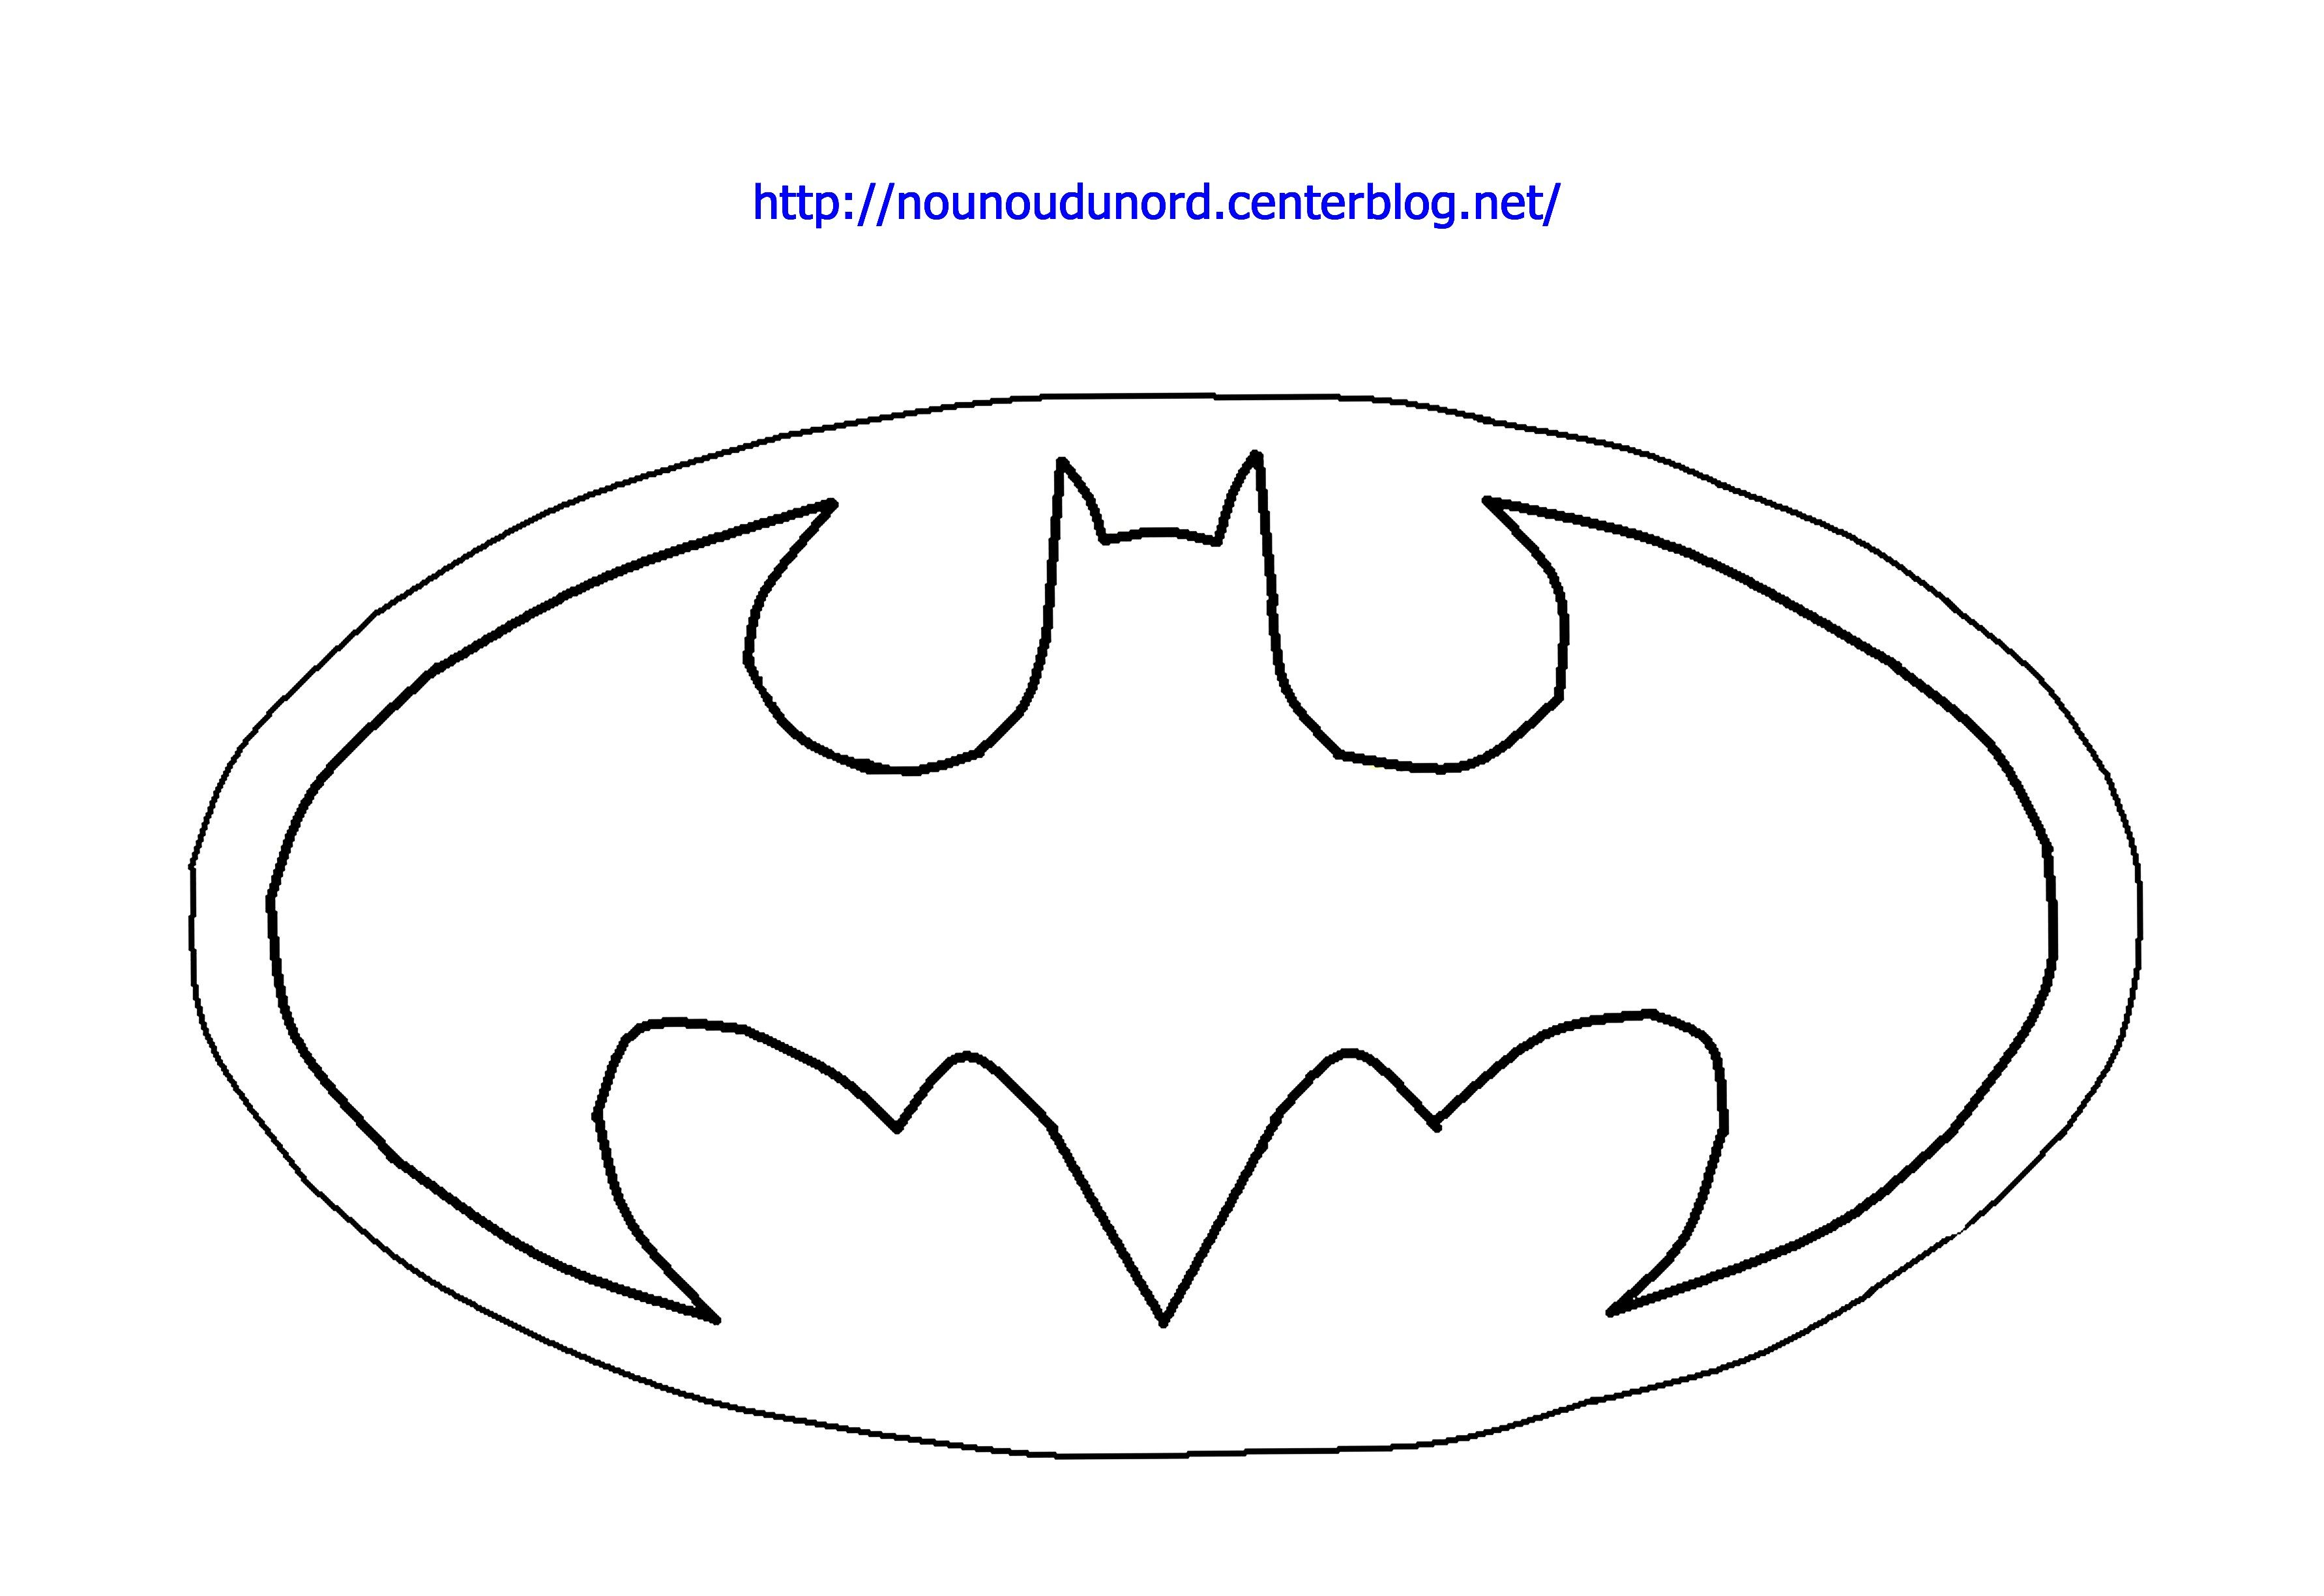 Coloriage Signe Batman.Coloriage Logo Batman Dessine Par Nounoudunord